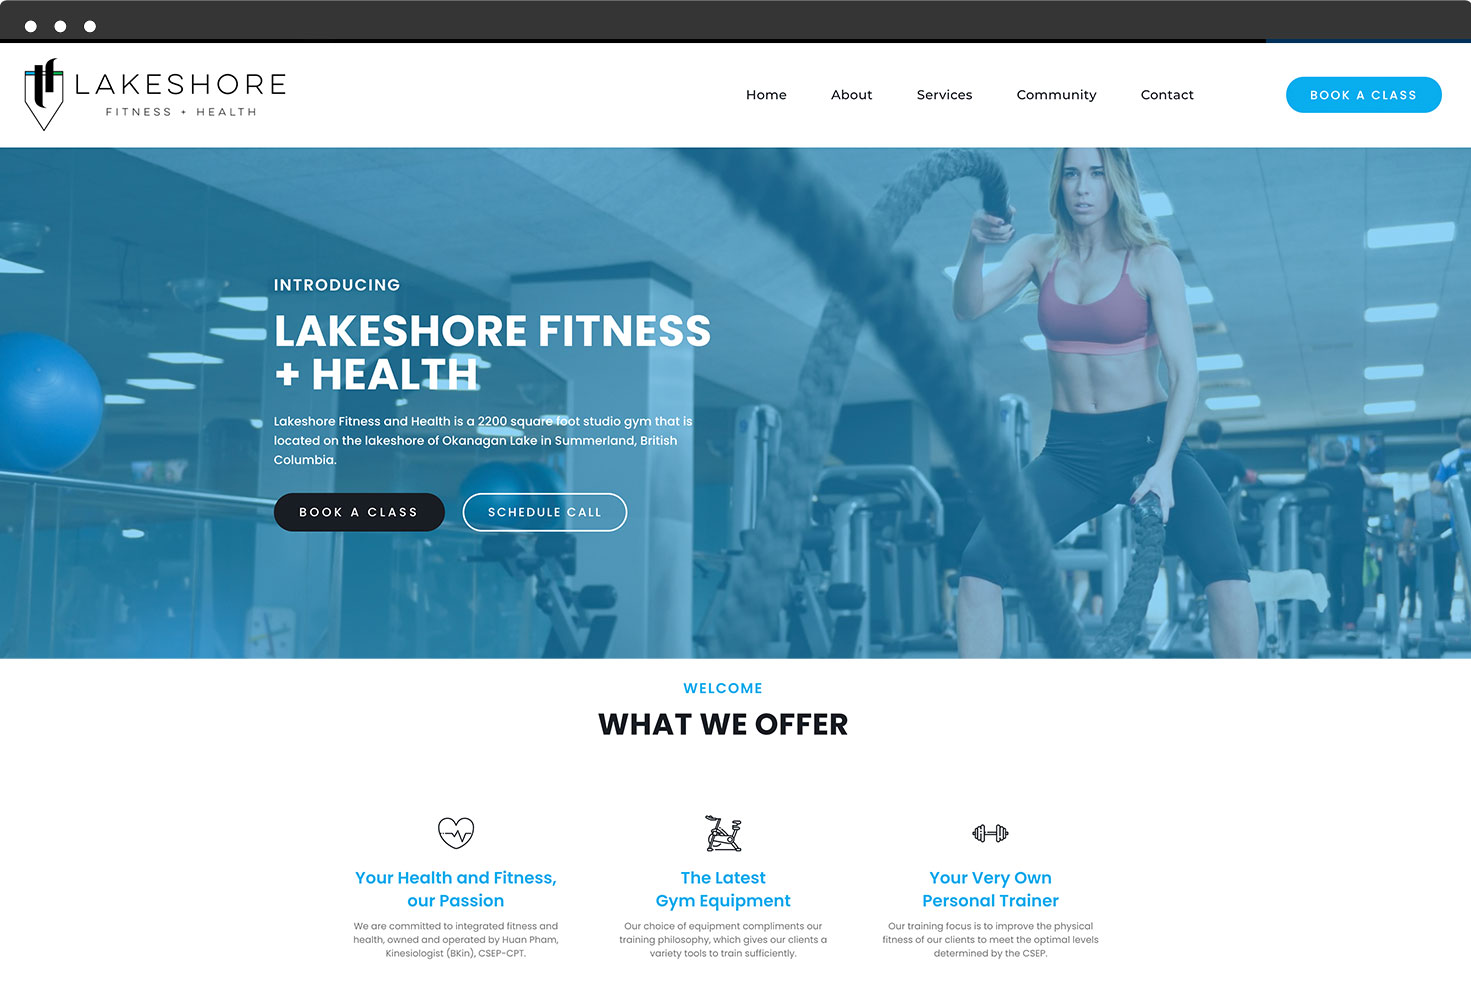 Image of Lakeshore Fitness's Website